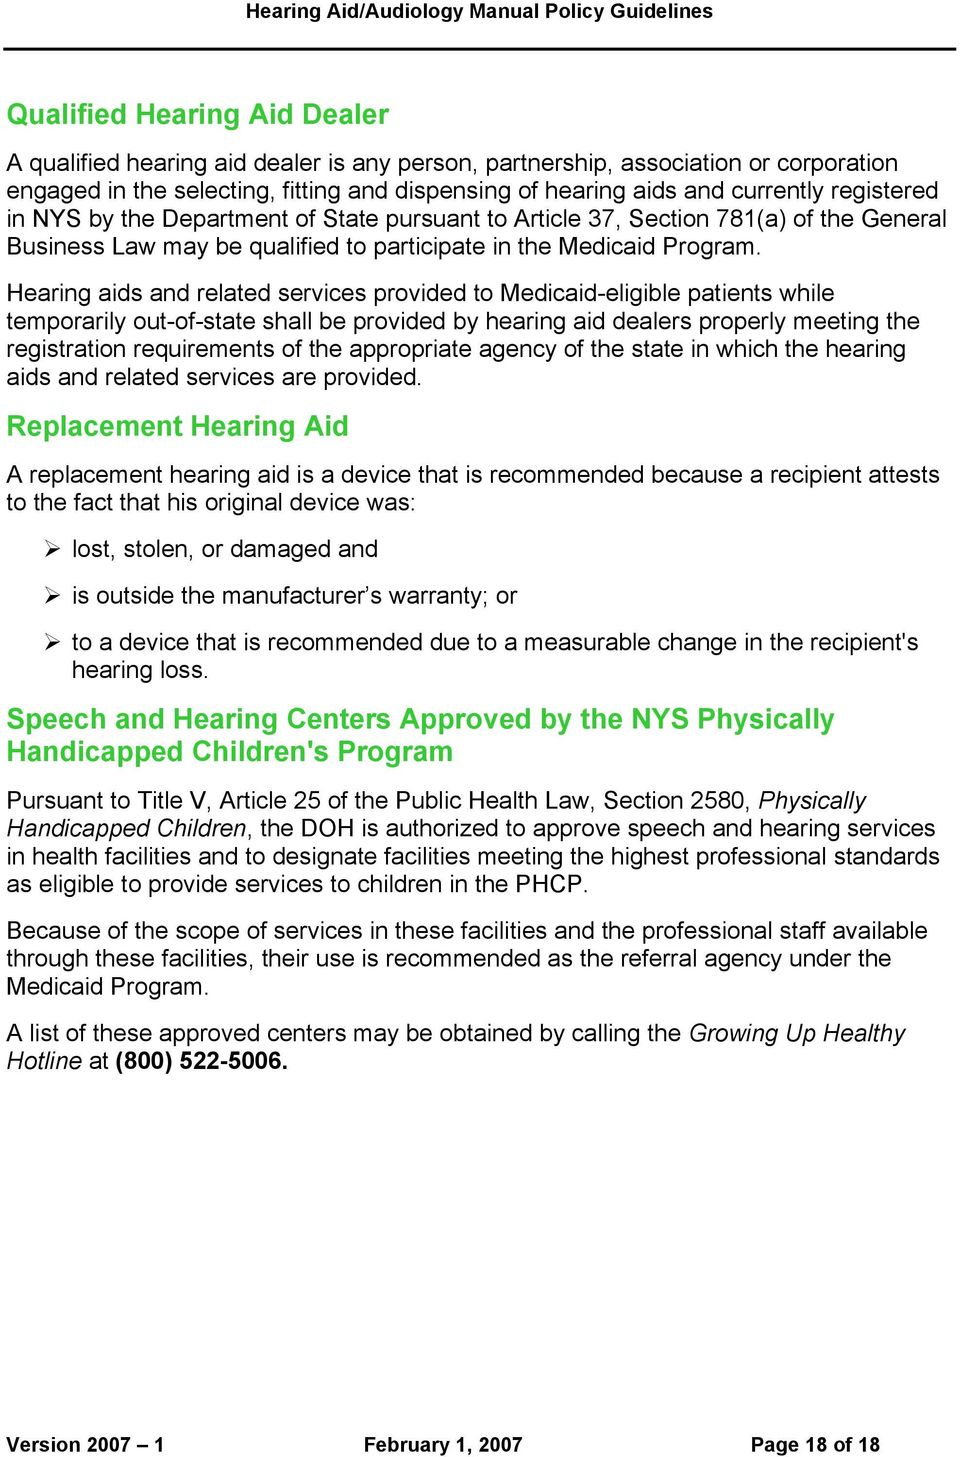 Hearing aids and related services provided to Medicaid-eligible patients while temporarily out-of-state shall be provided by hearing aid dealers properly meeting the registration requirements of the